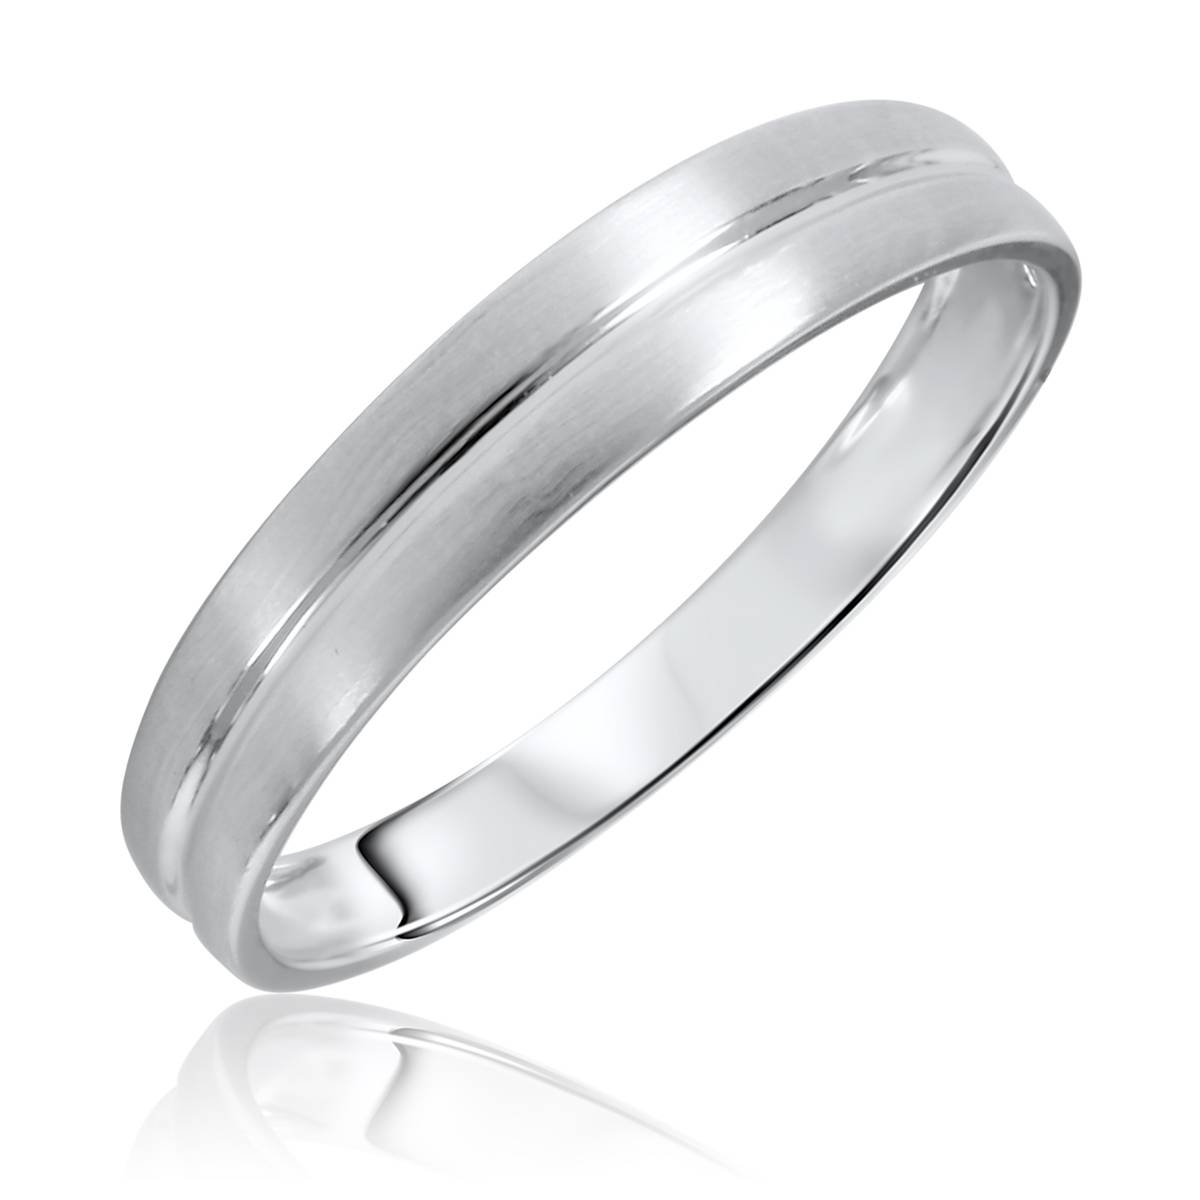 Mens Wedding Band 14K White Gold Within White Gold And Gold Wedding Bands (Gallery 7 of 15)